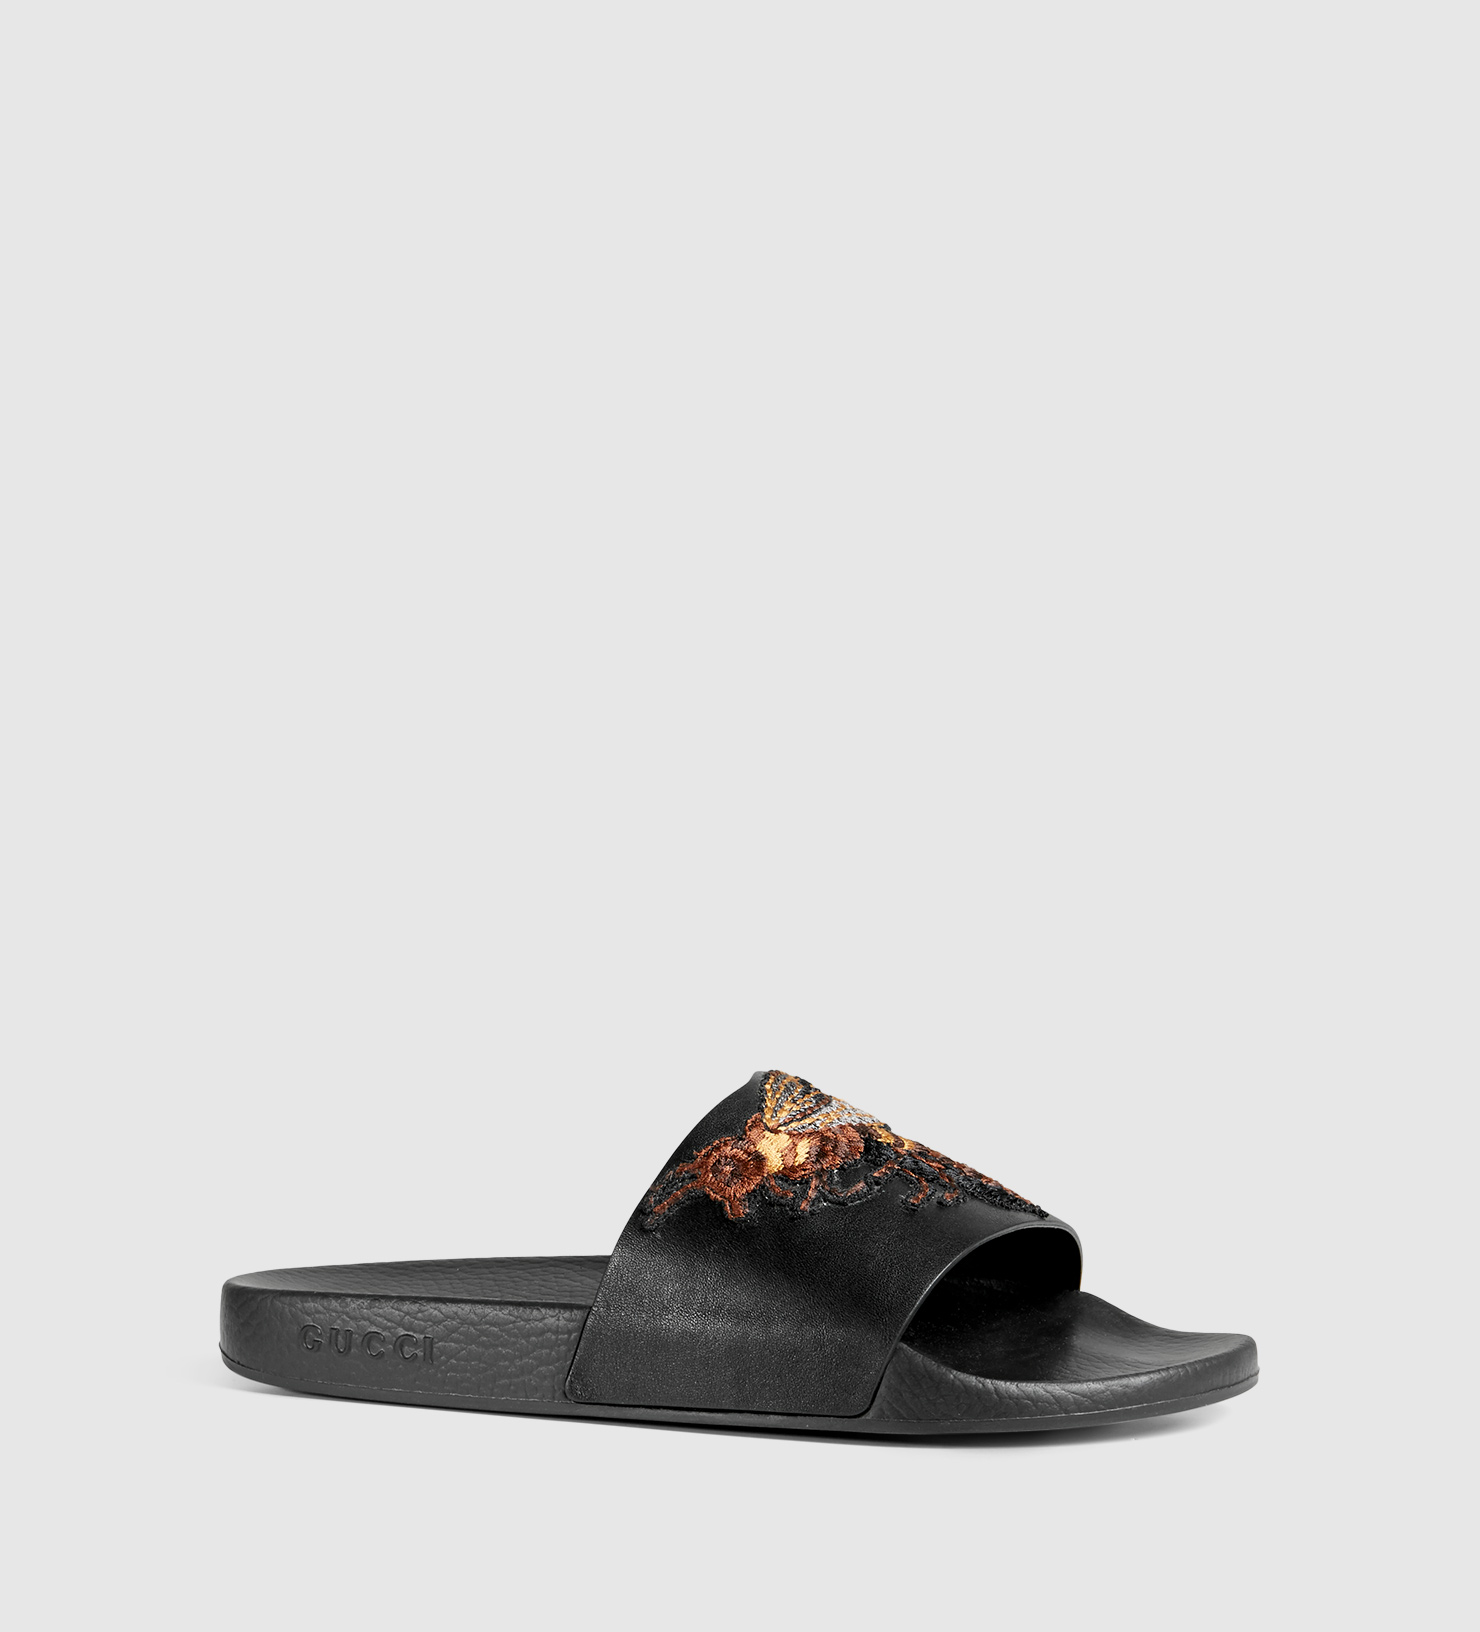 gucci shoes black bee. gallery gucci shoes black bee